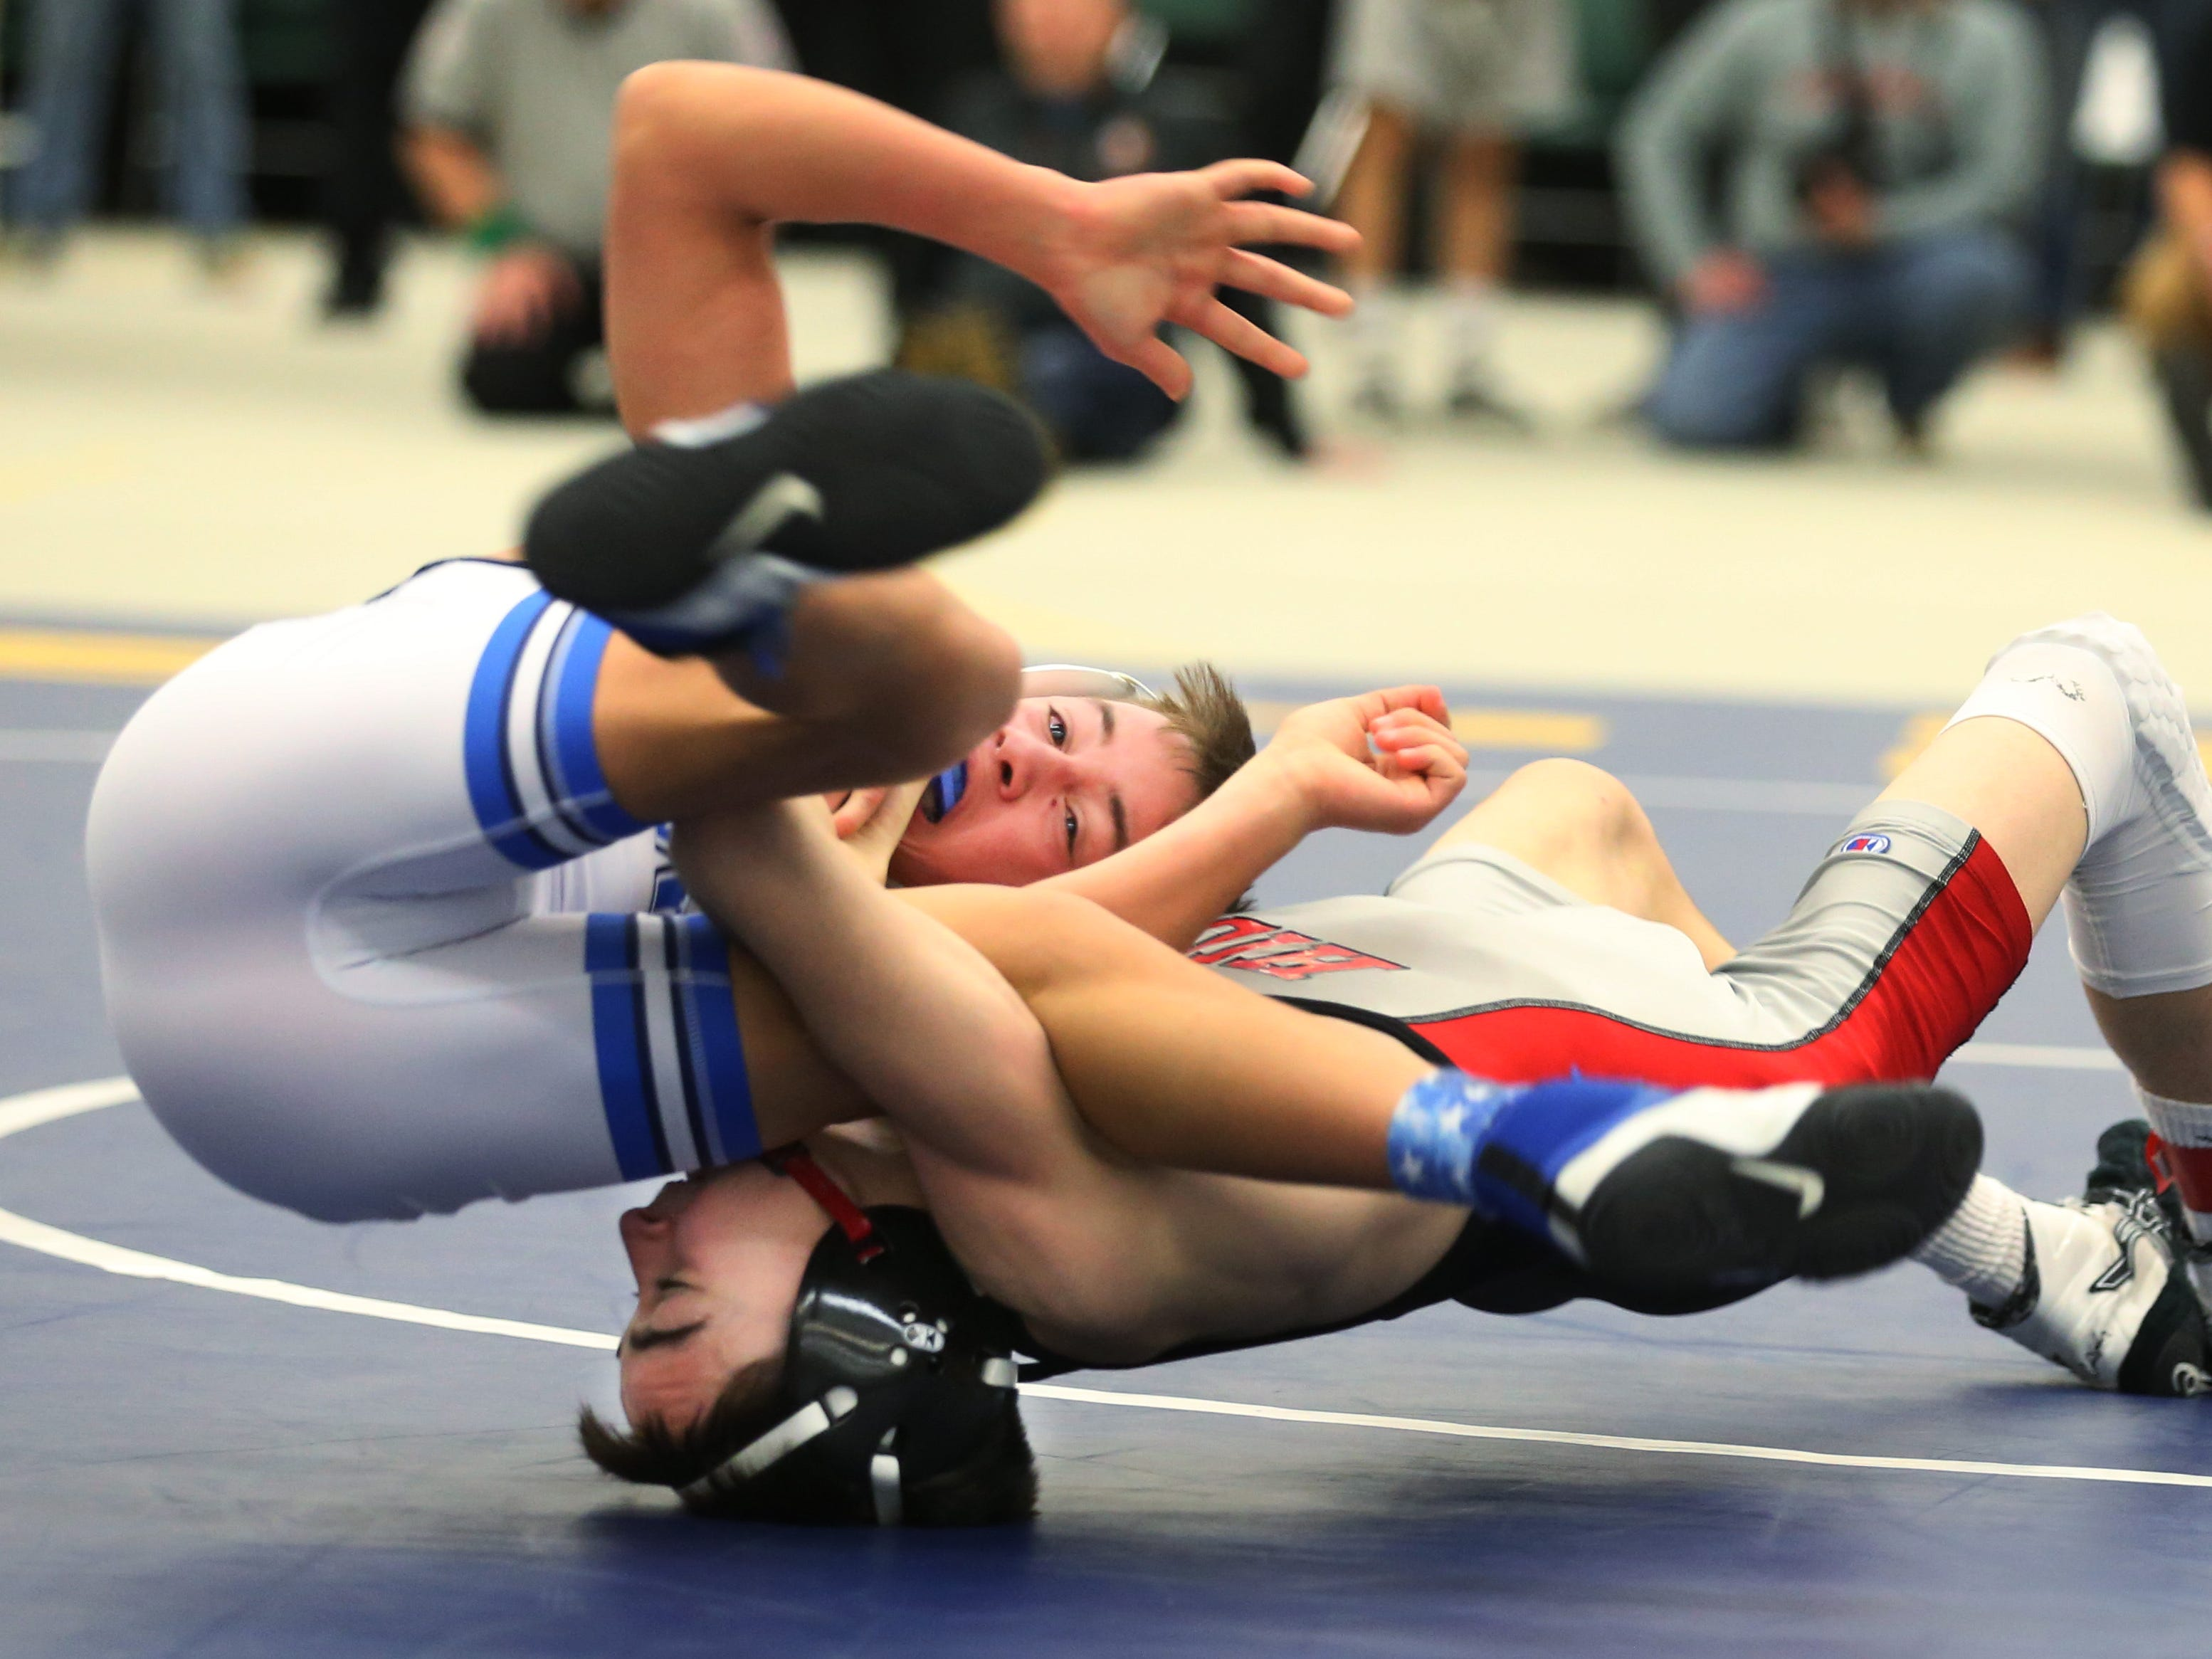 Hilton's Gregor McNeil, right, takes down Casper Stewart, Attica/Batavia, in their Division 1 99 pound match at the 52nd Annual State Wrestling Qualifier at the College at Brockport Saturday, Feb. 9, 2019.